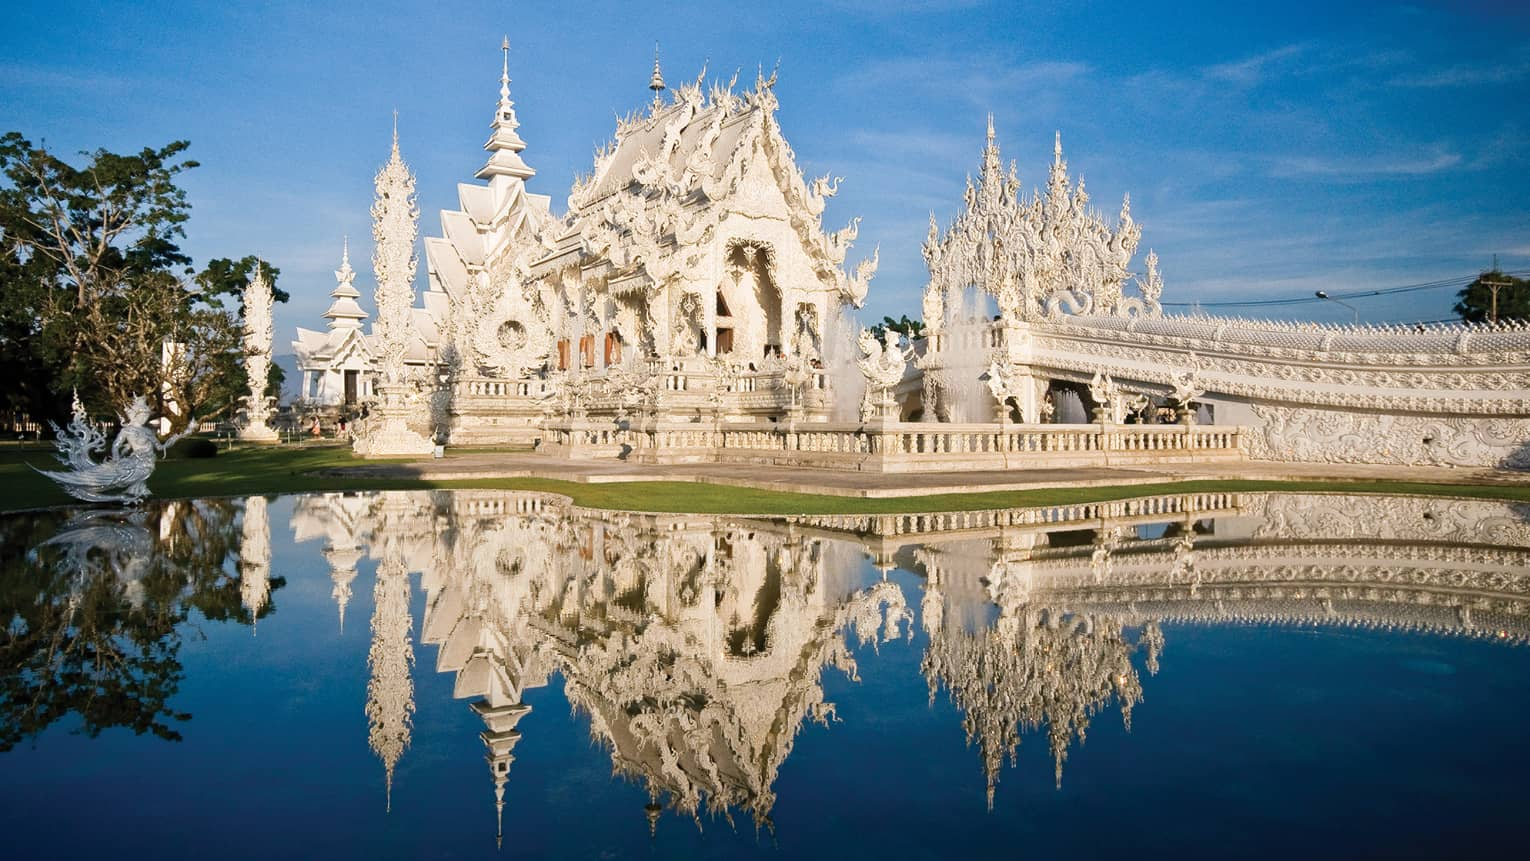 An ornate white castle reflecting in a pond